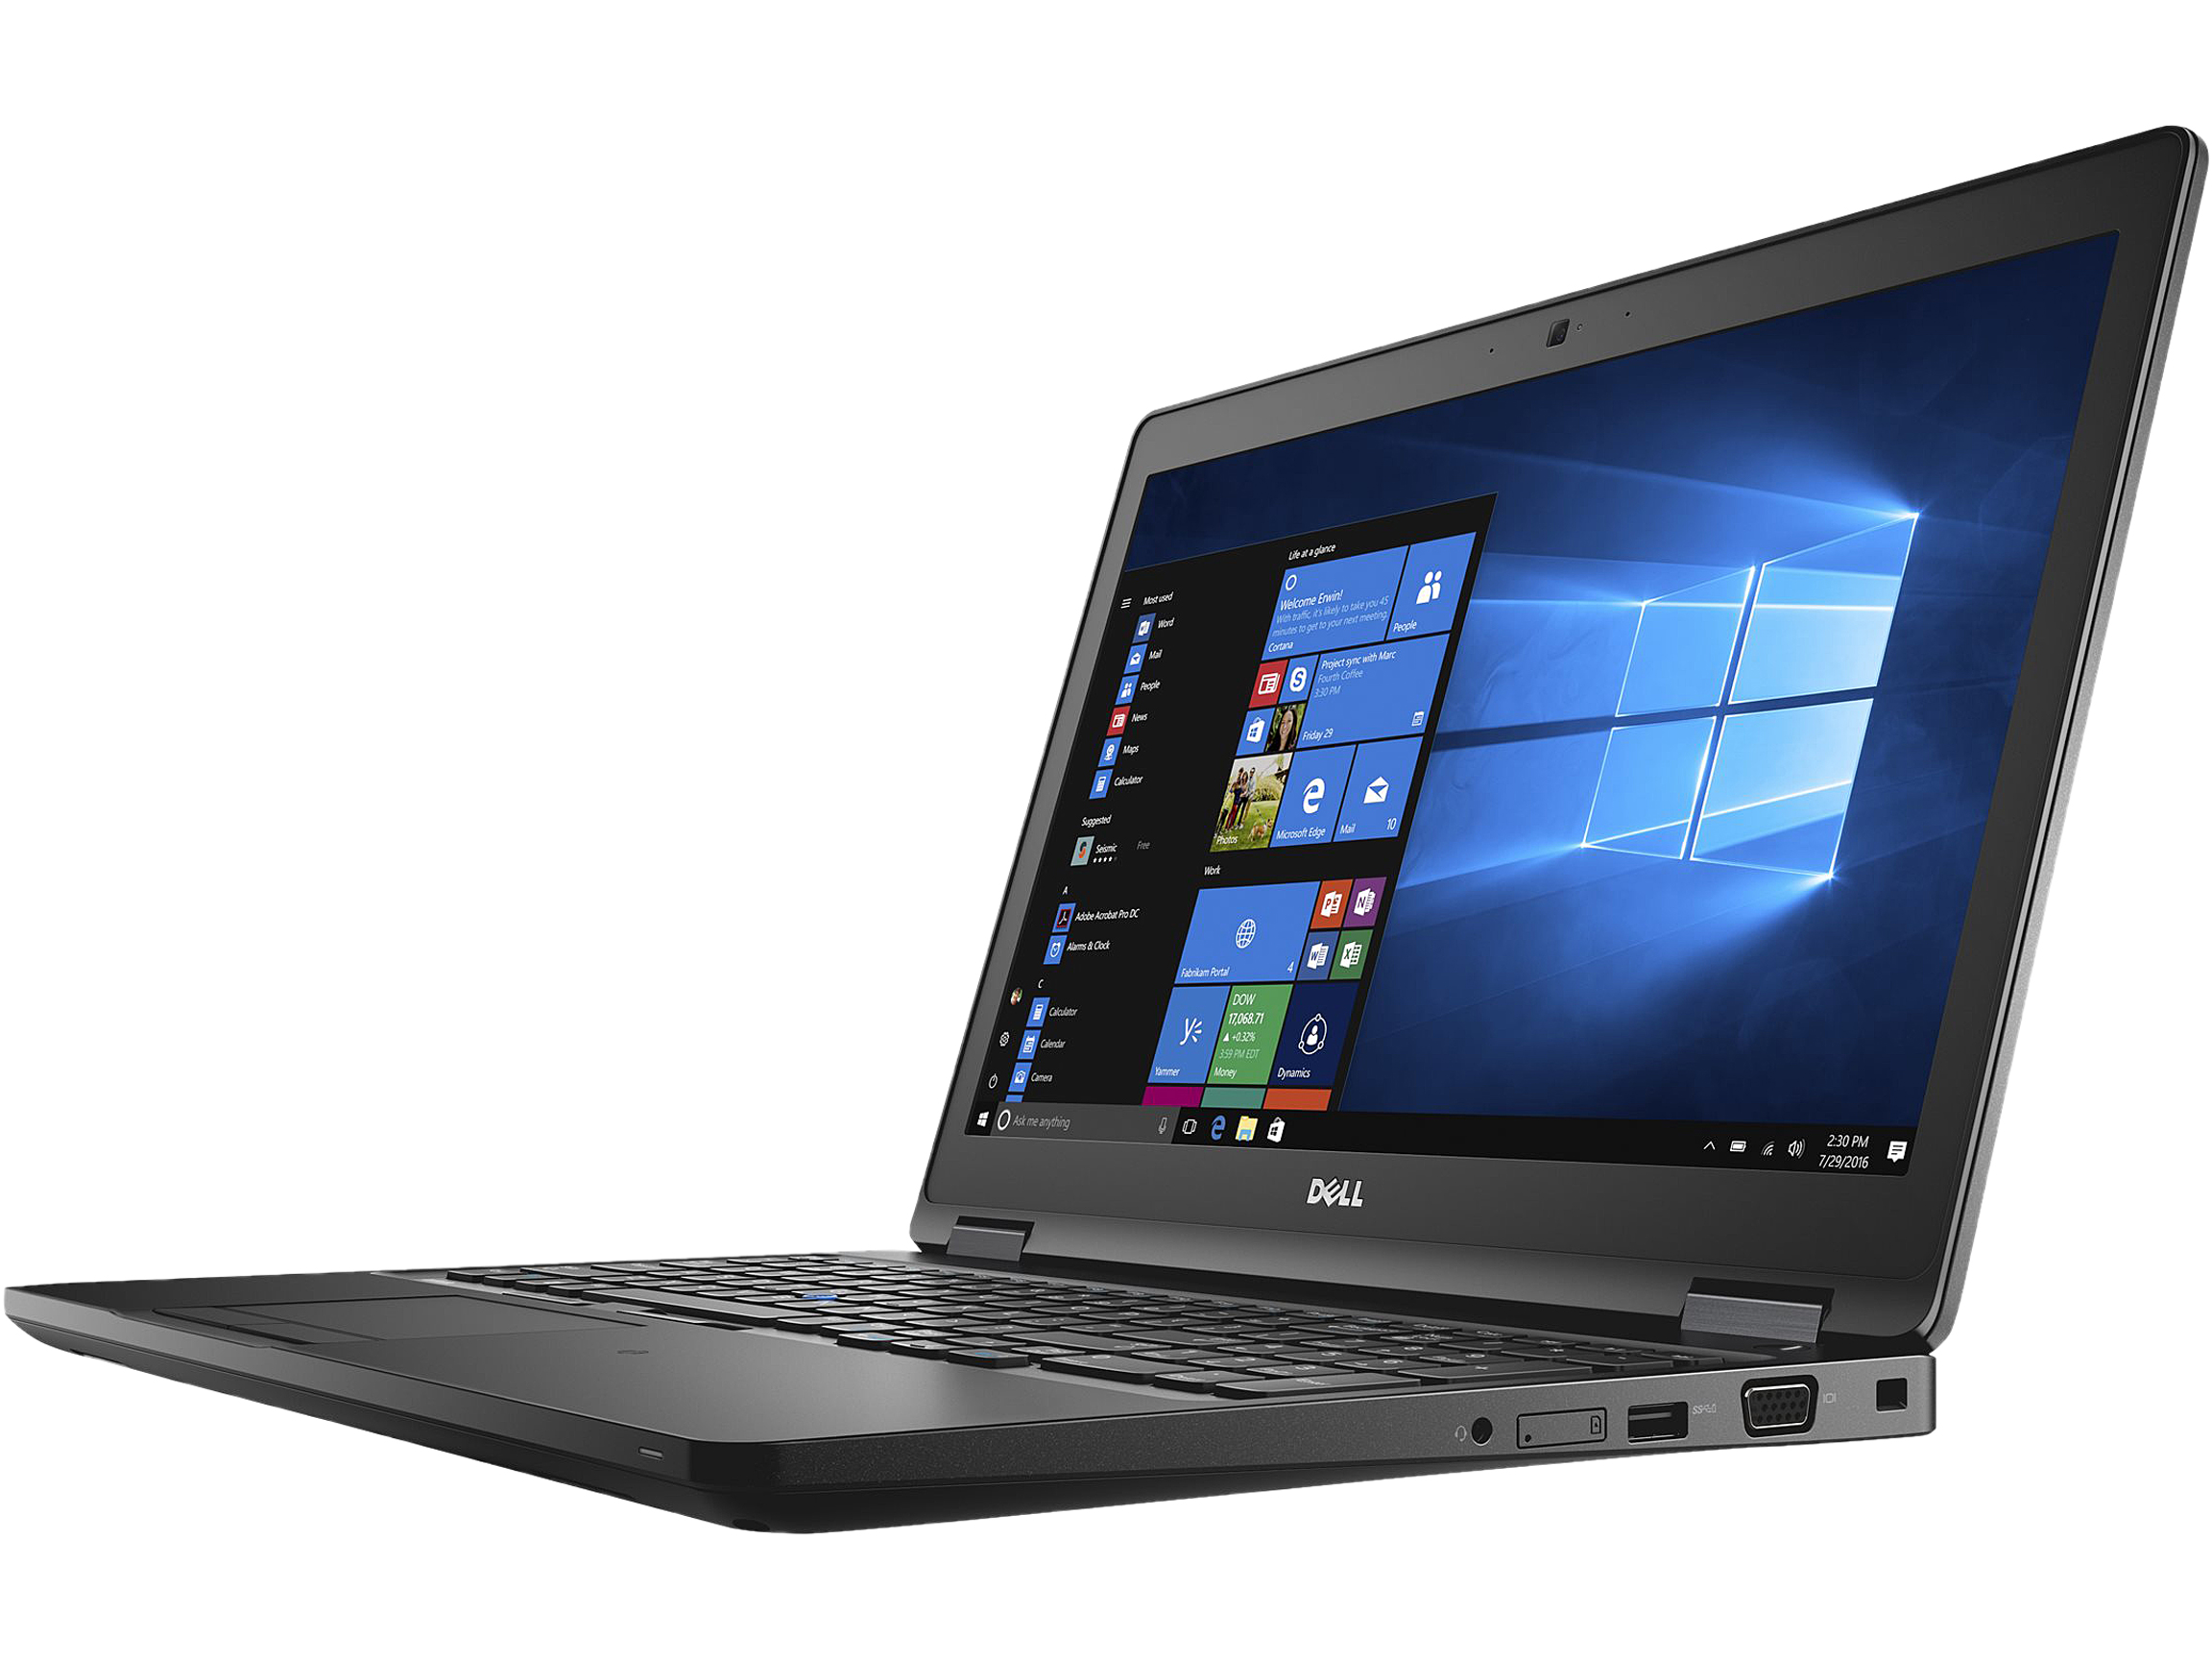 DELL LATITUDE E6520 NOTEBOOK LOGITECH BLUETOOTH MOUSE DRIVER DOWNLOAD (2019)